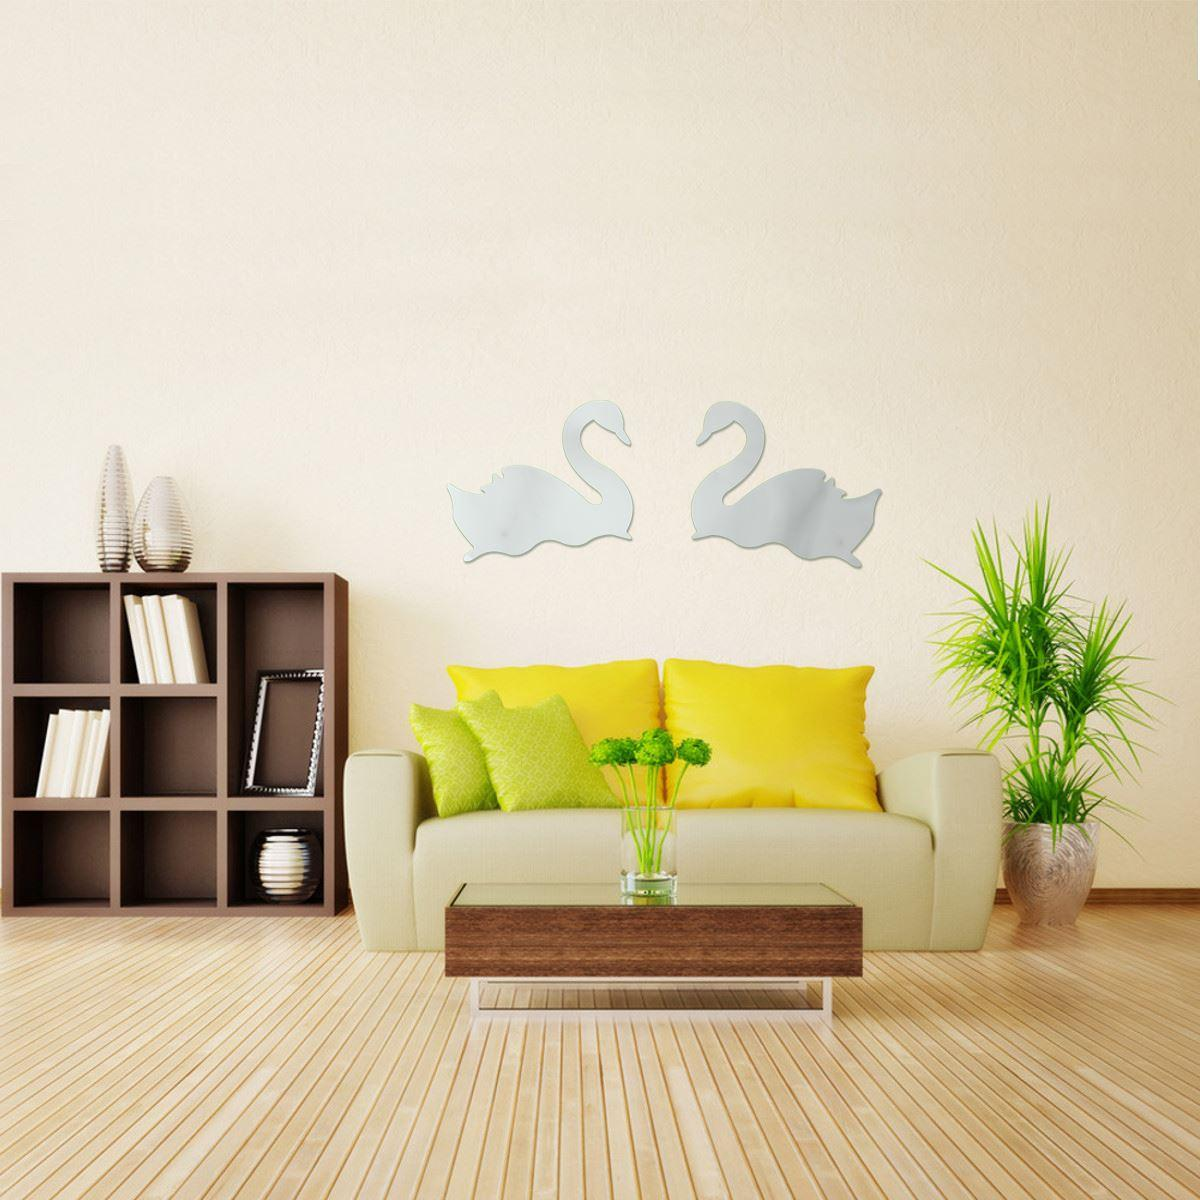 Hot sale 3d design house decoration swans in love wall stickers hot sale 3d design house decoration swans in love wall stickers for home decor diy child wallpaper art decals kid wall decals kid wall stickers from amipublicfo Choice Image